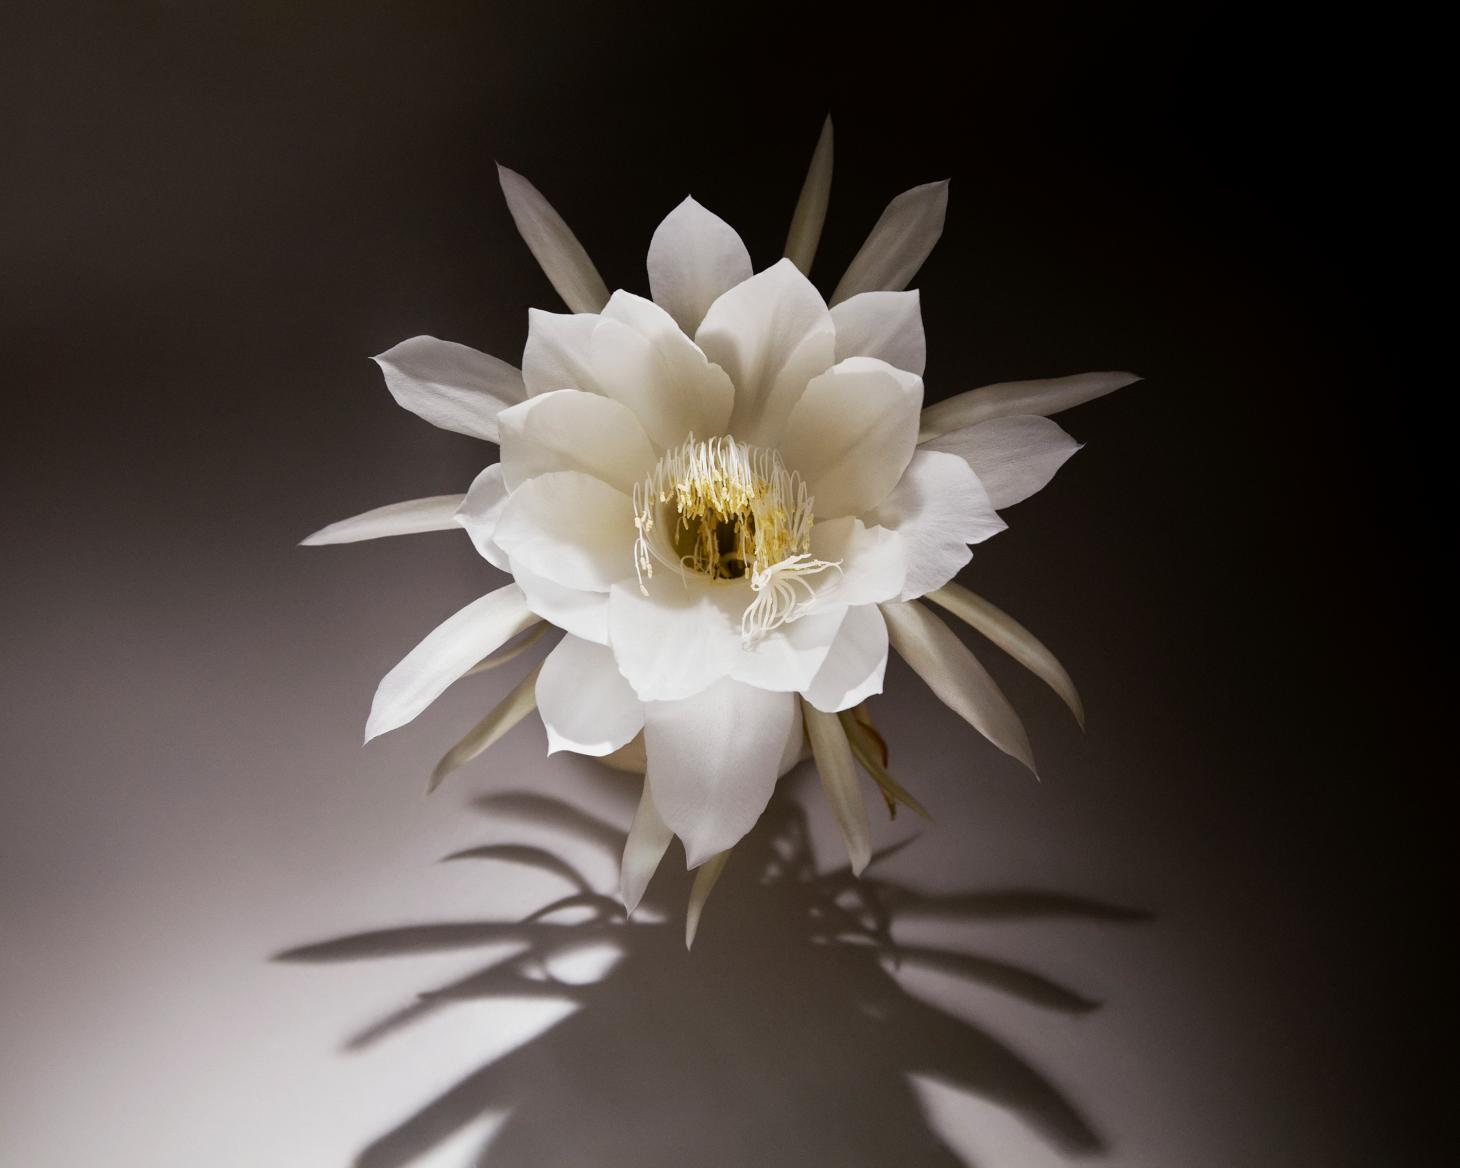 rare orchid cactus known as Queen of the Night that is infused into seventy one gin